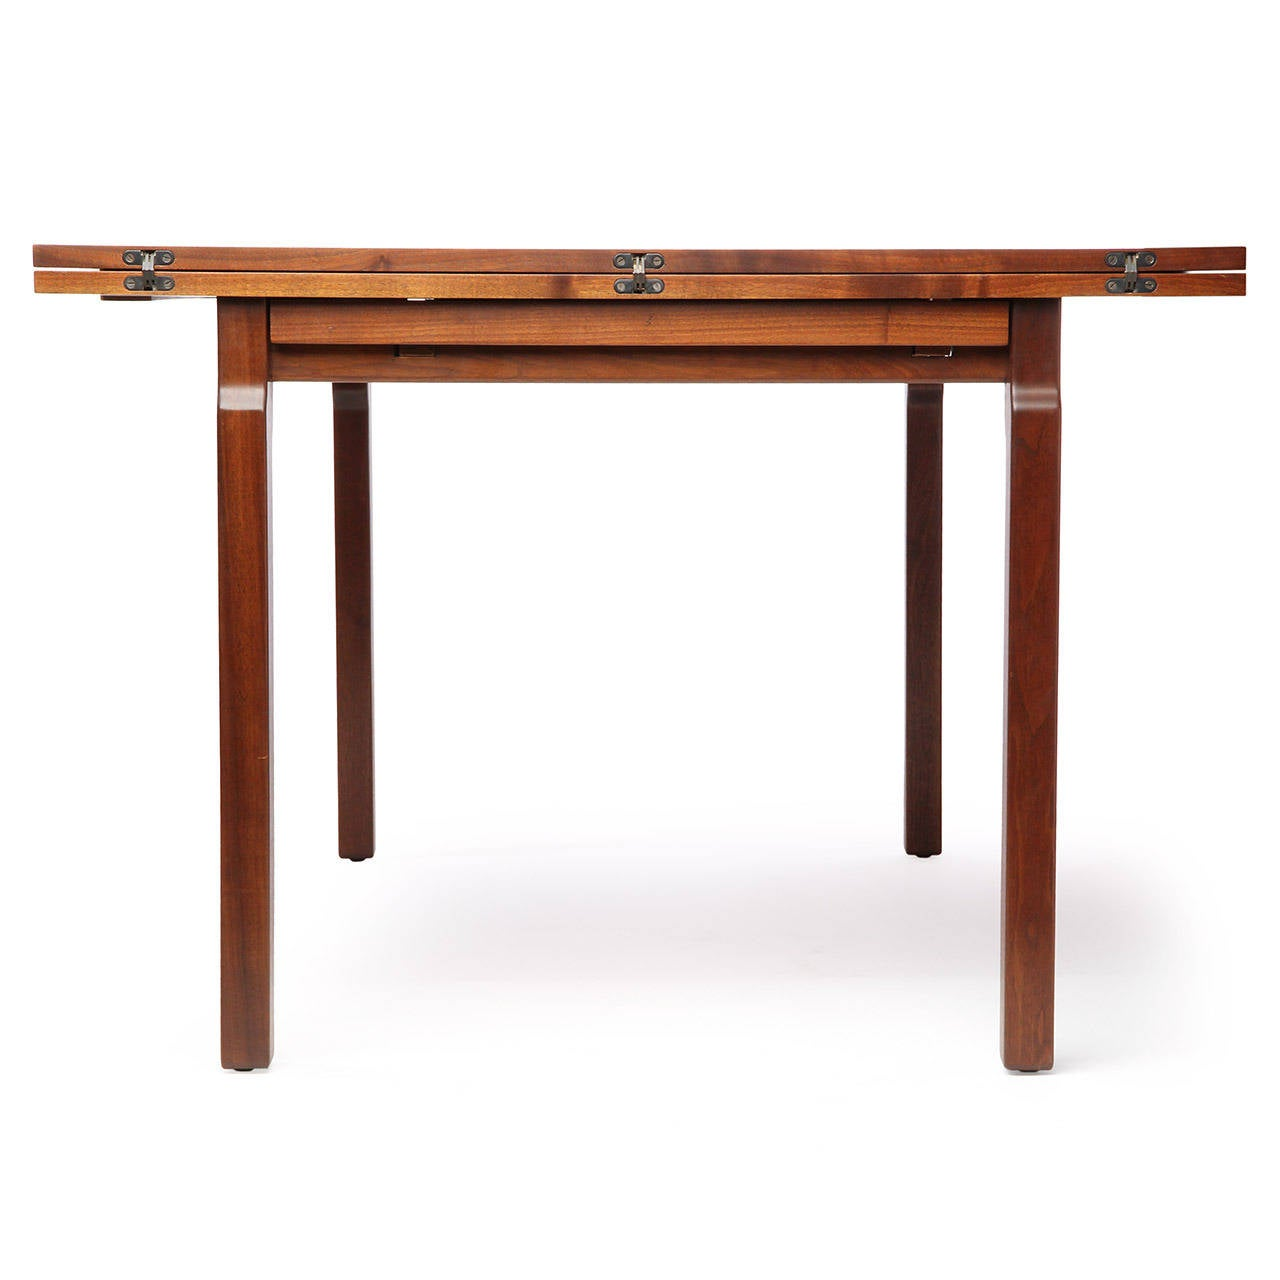 expanding dining table by edward wormley for sale at 1stdibs. Black Bedroom Furniture Sets. Home Design Ideas